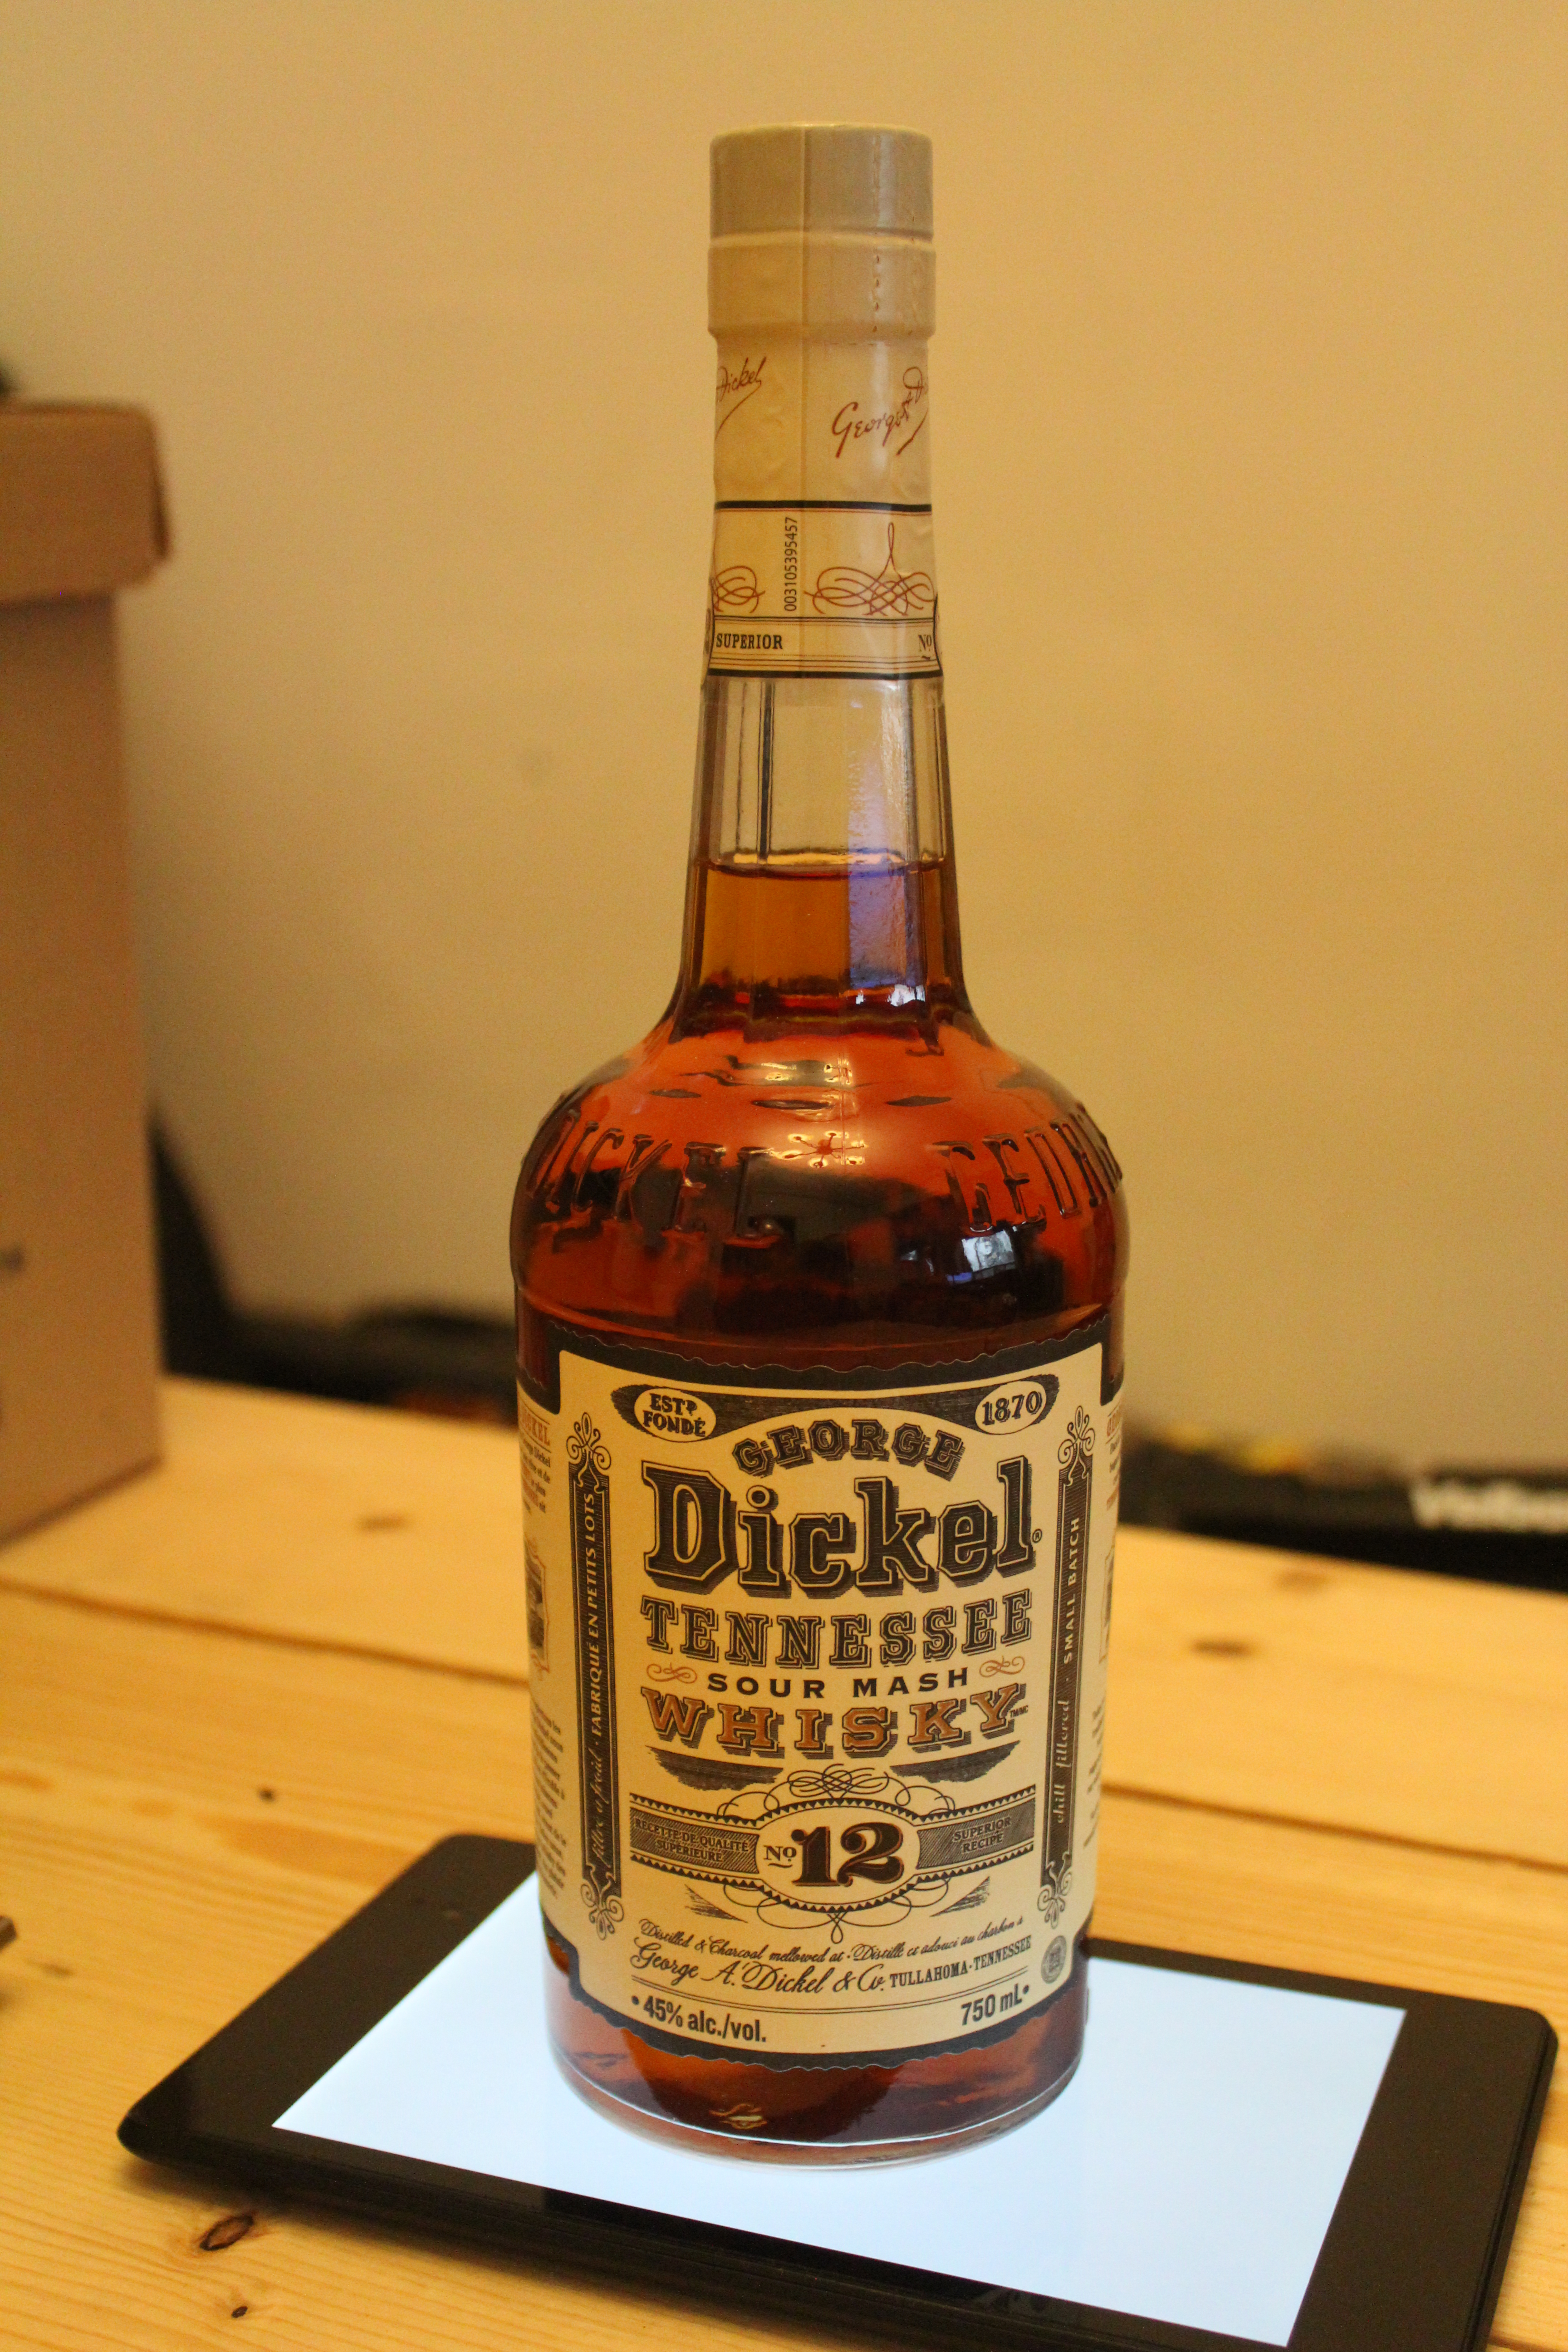 George Dickel No. 12 Tennessee Sour Mash Whisky with Dan & Davey